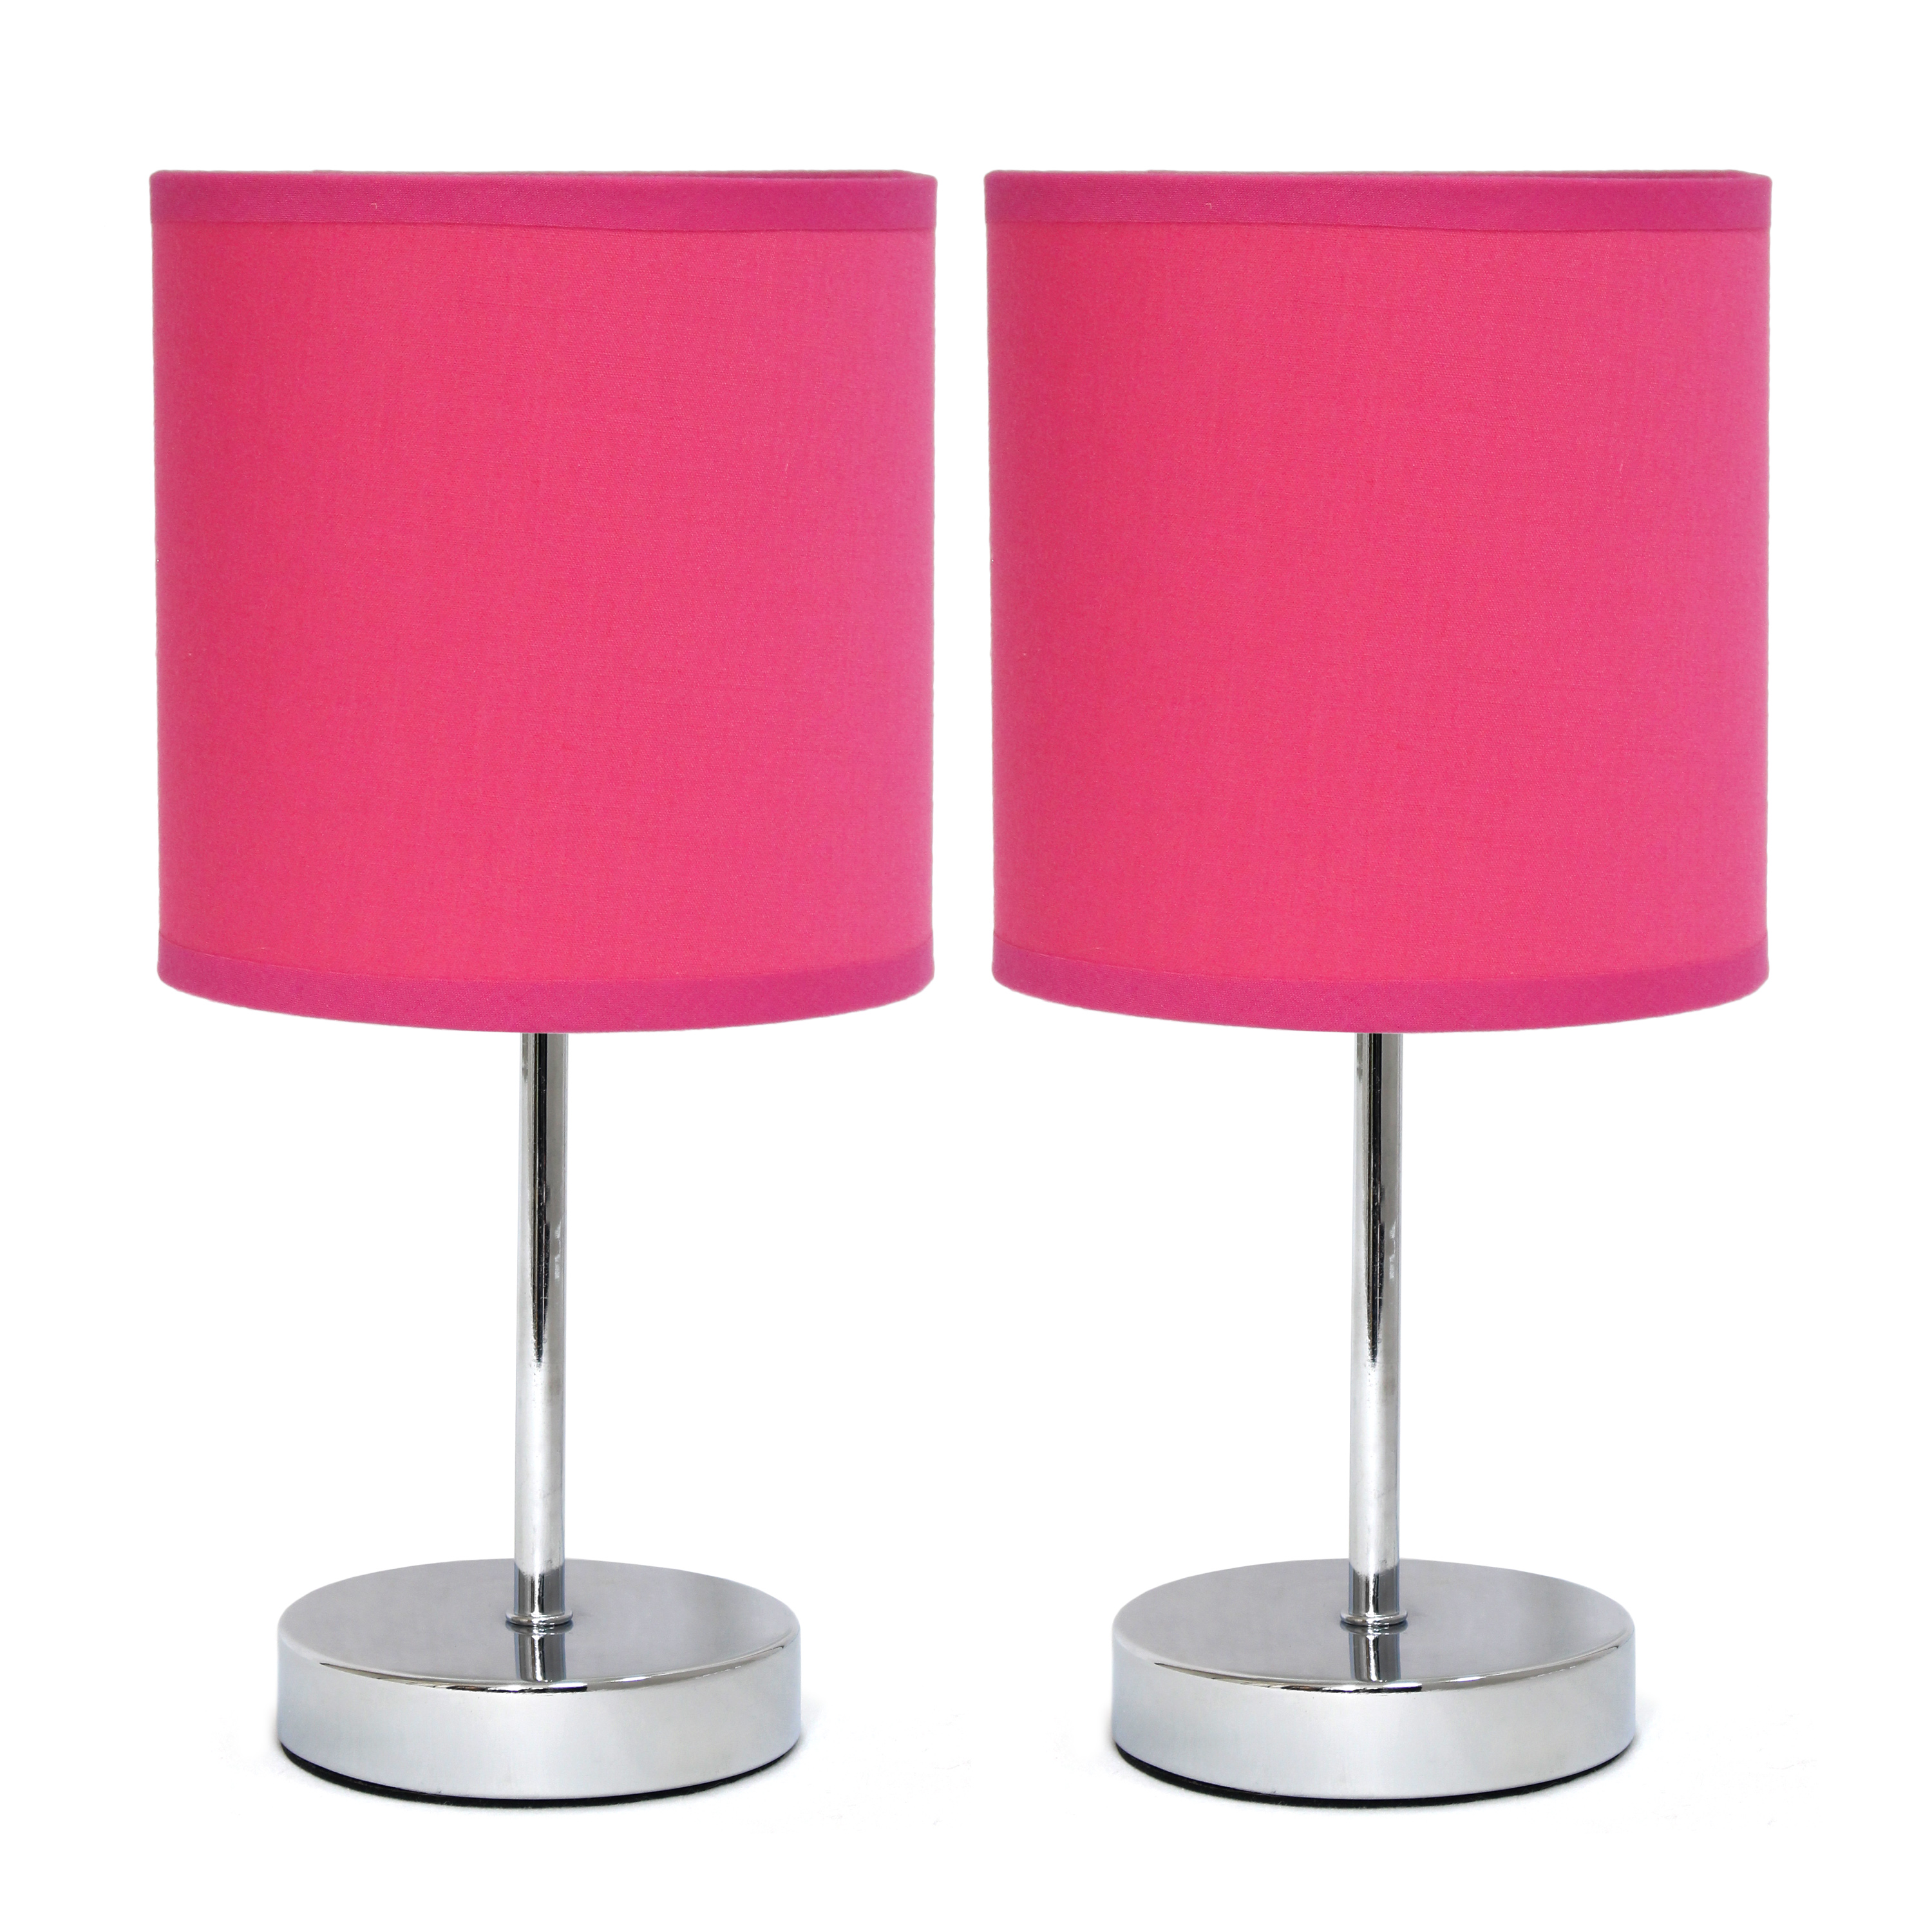 Simple Designs Chrome Mini Basic Table Lamp with Fabric Shade 2 Pack Set, Hot Pink